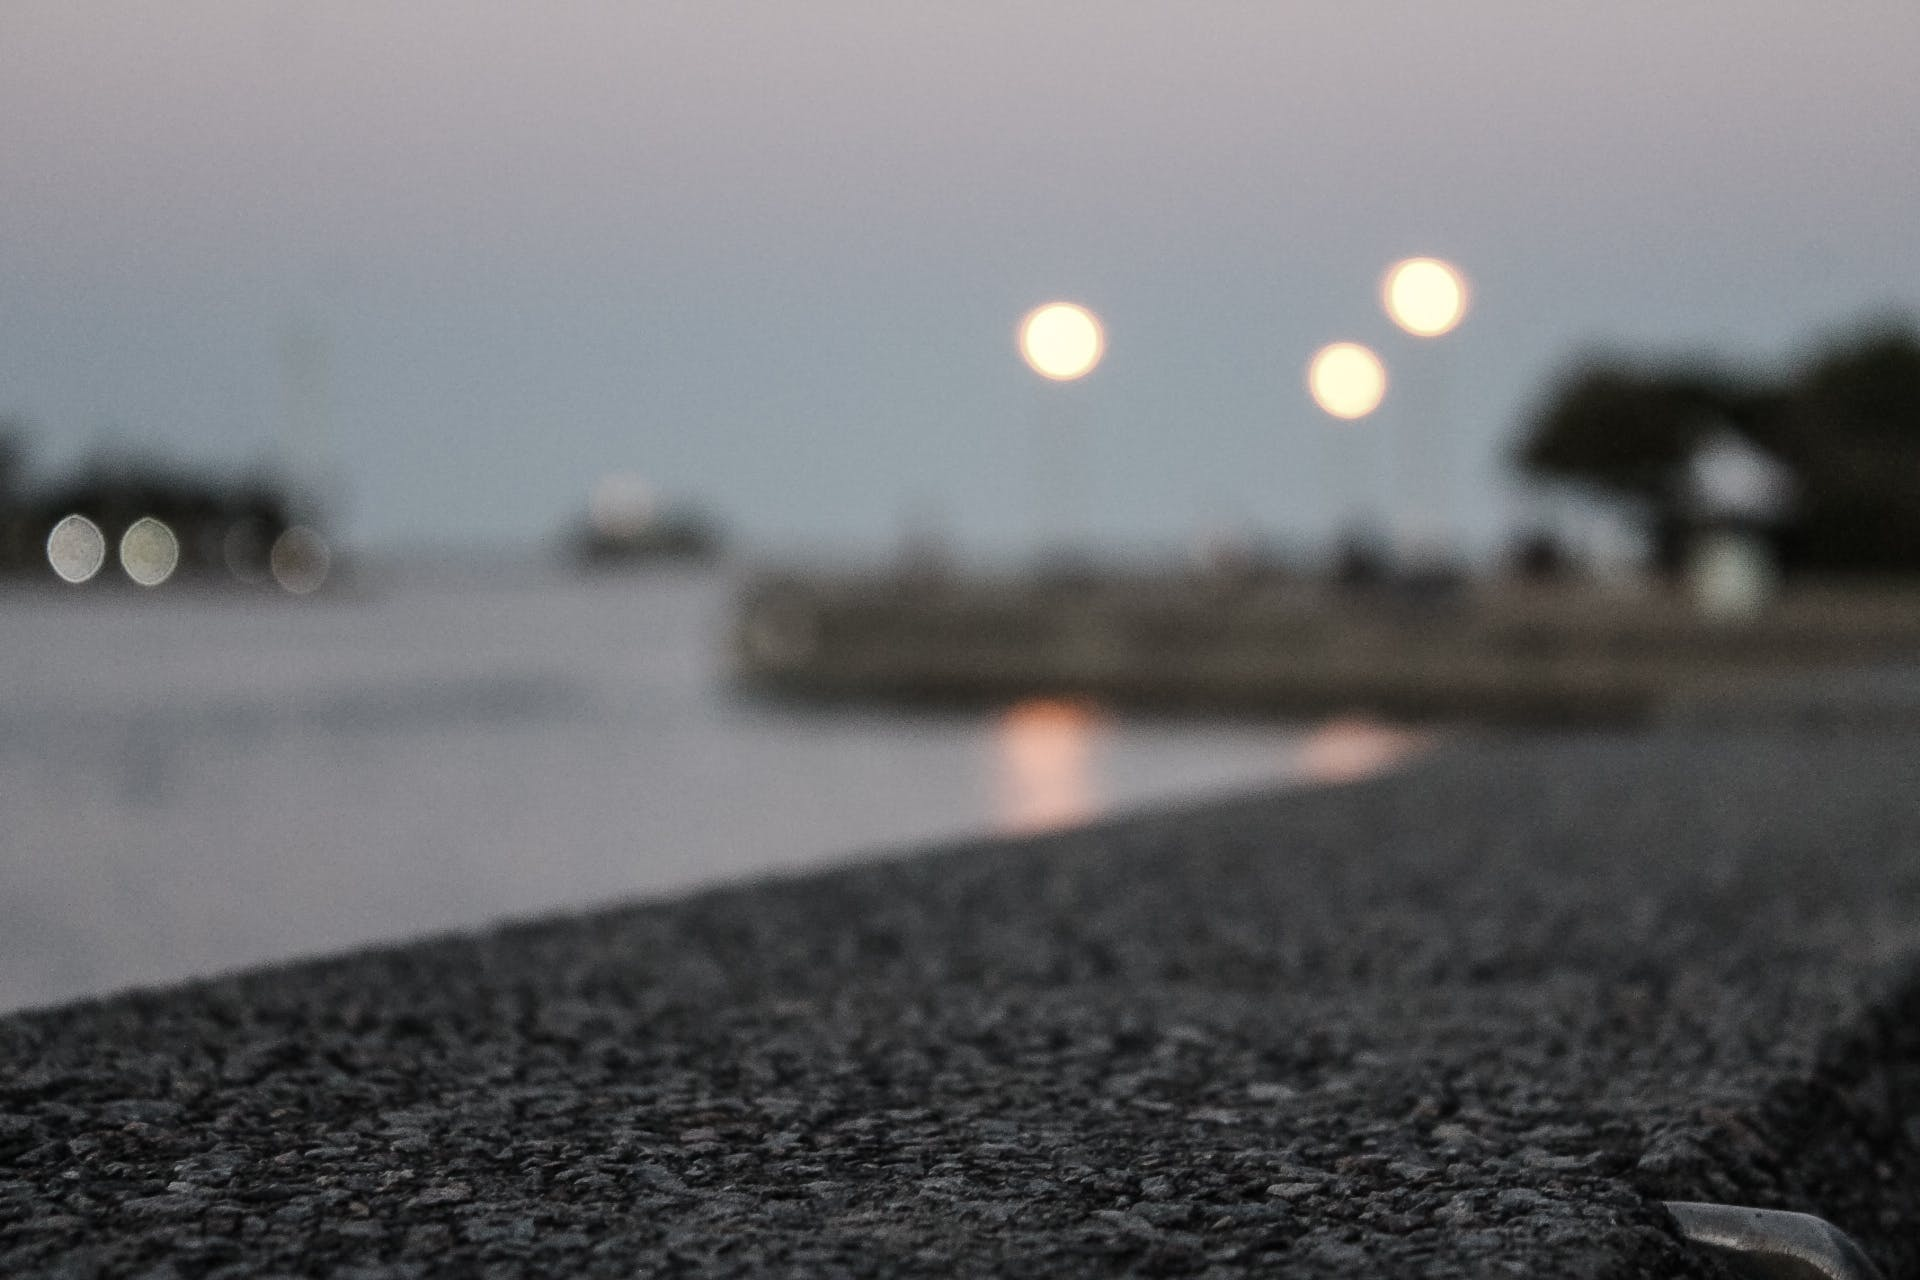 Free stock photo of blur, blurred, blurred background, harbour